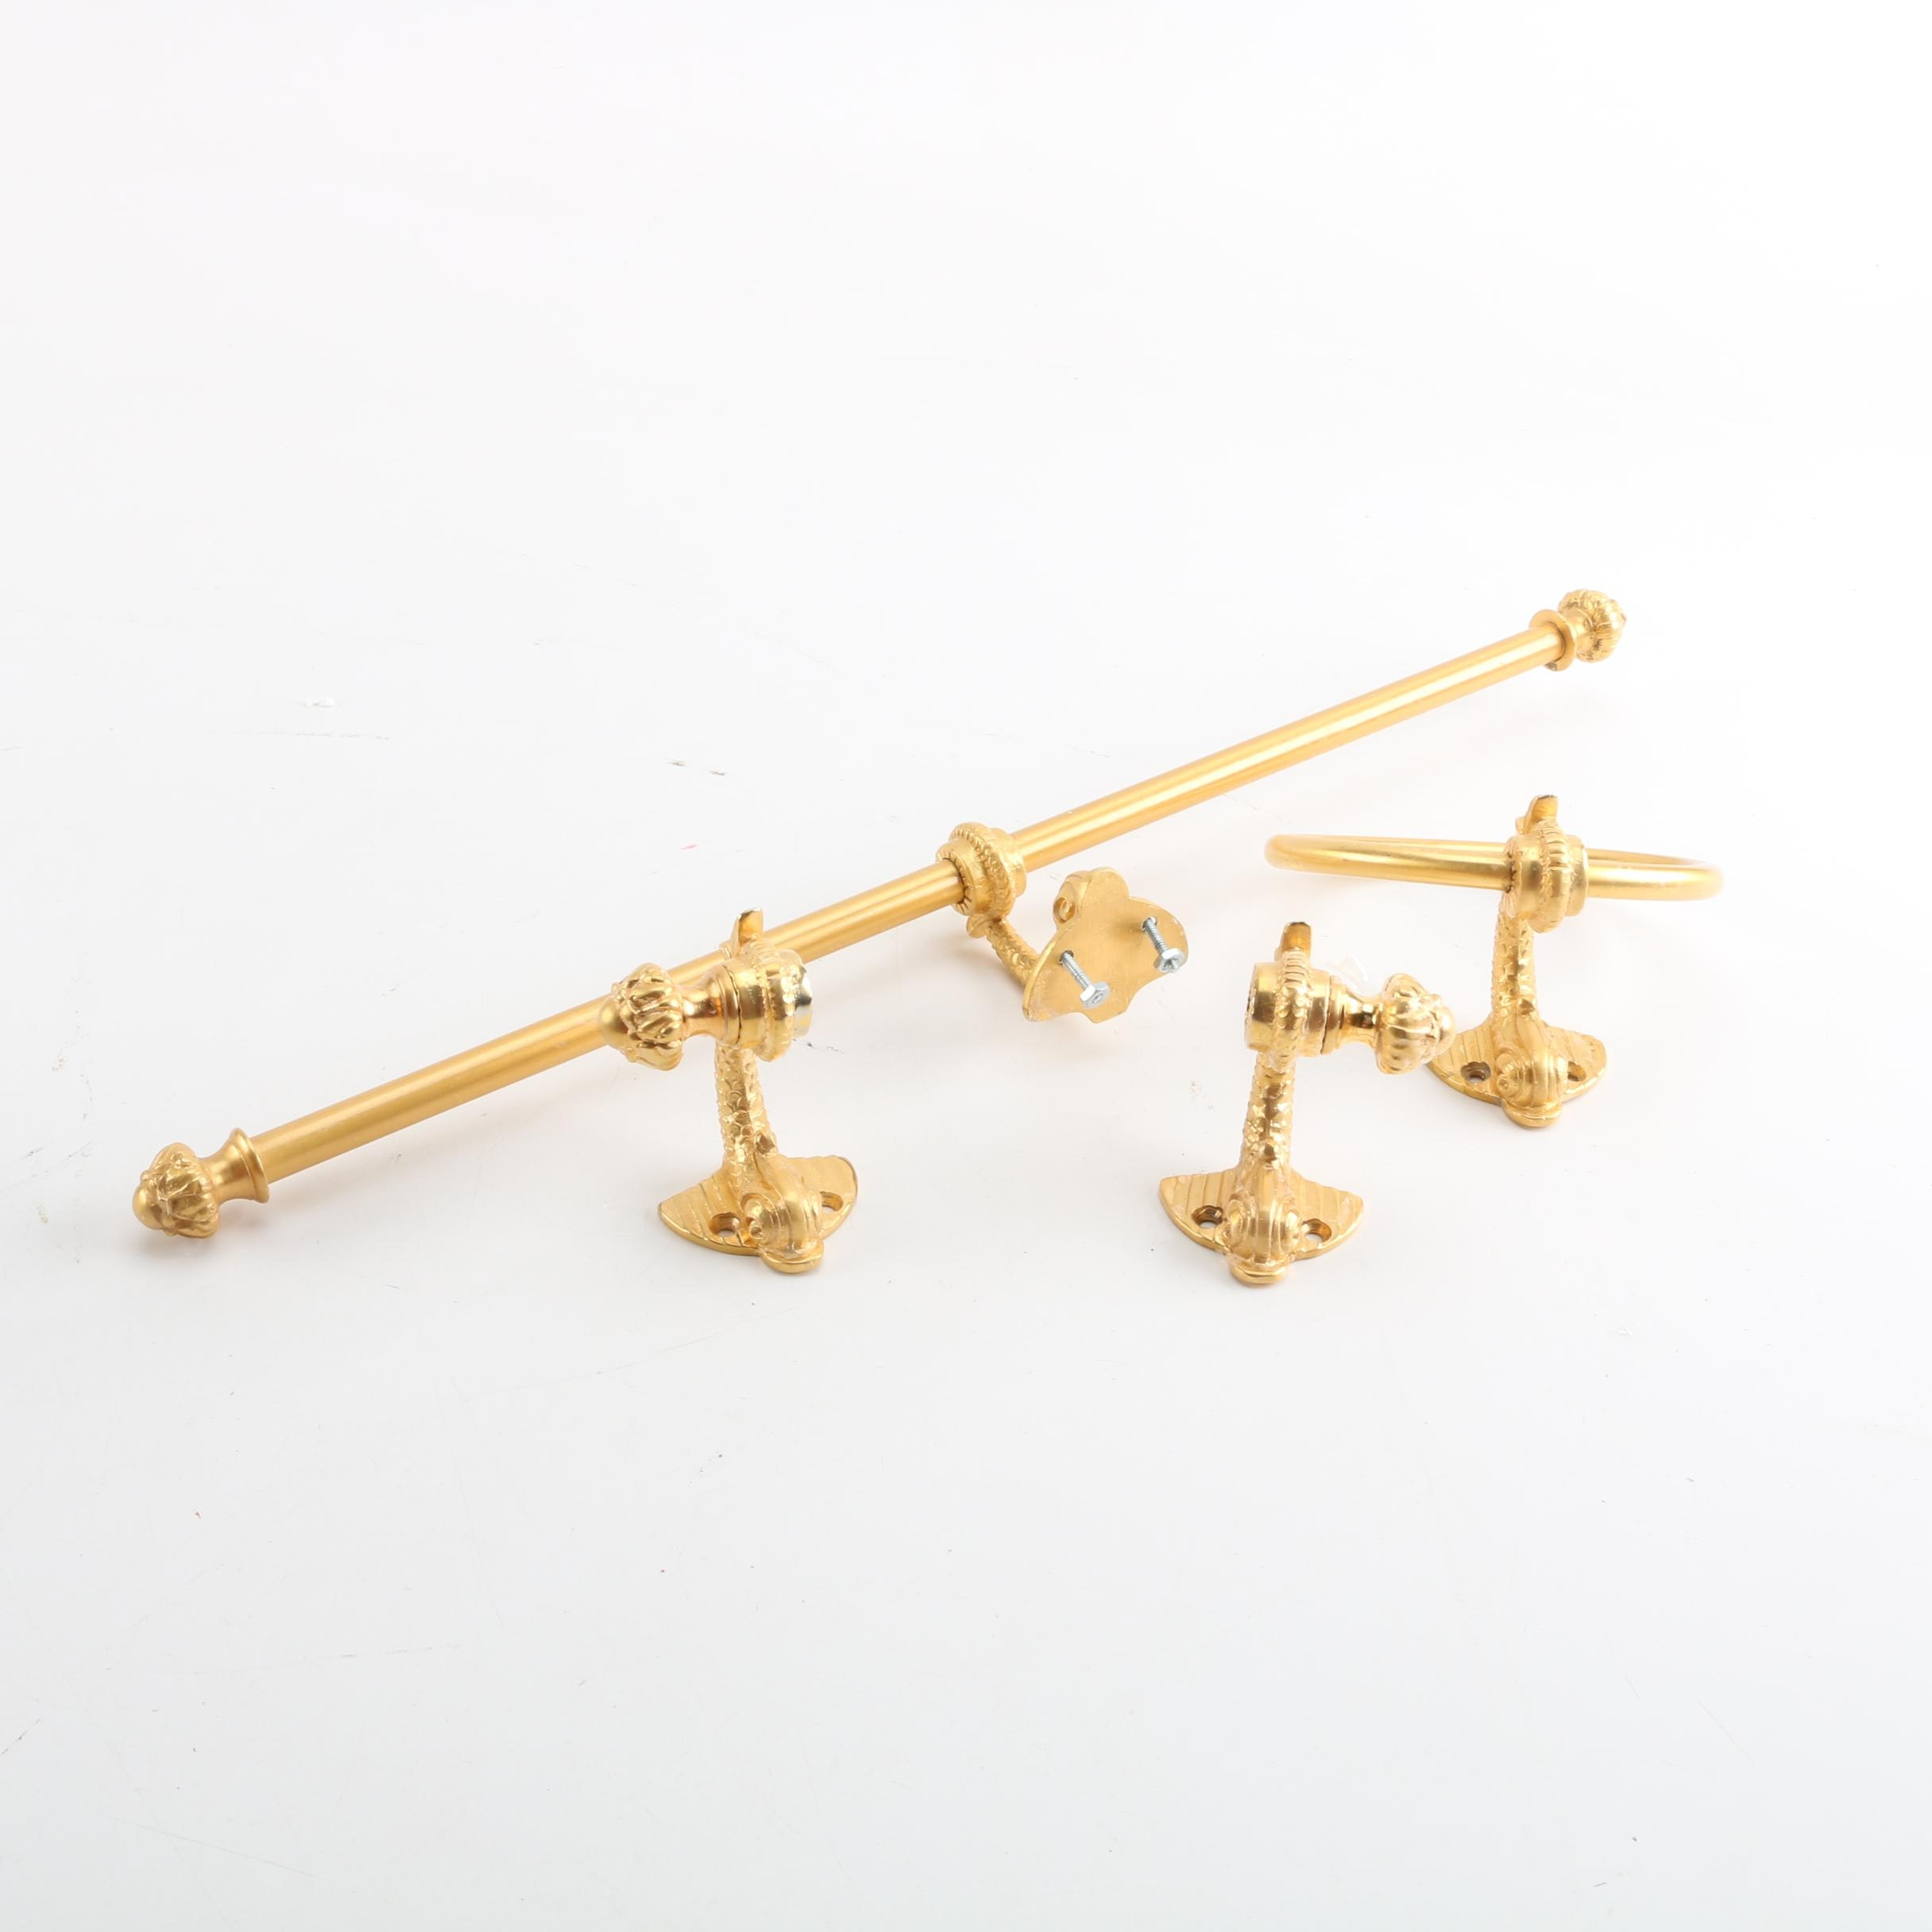 Brass Toned Towel Bars and More